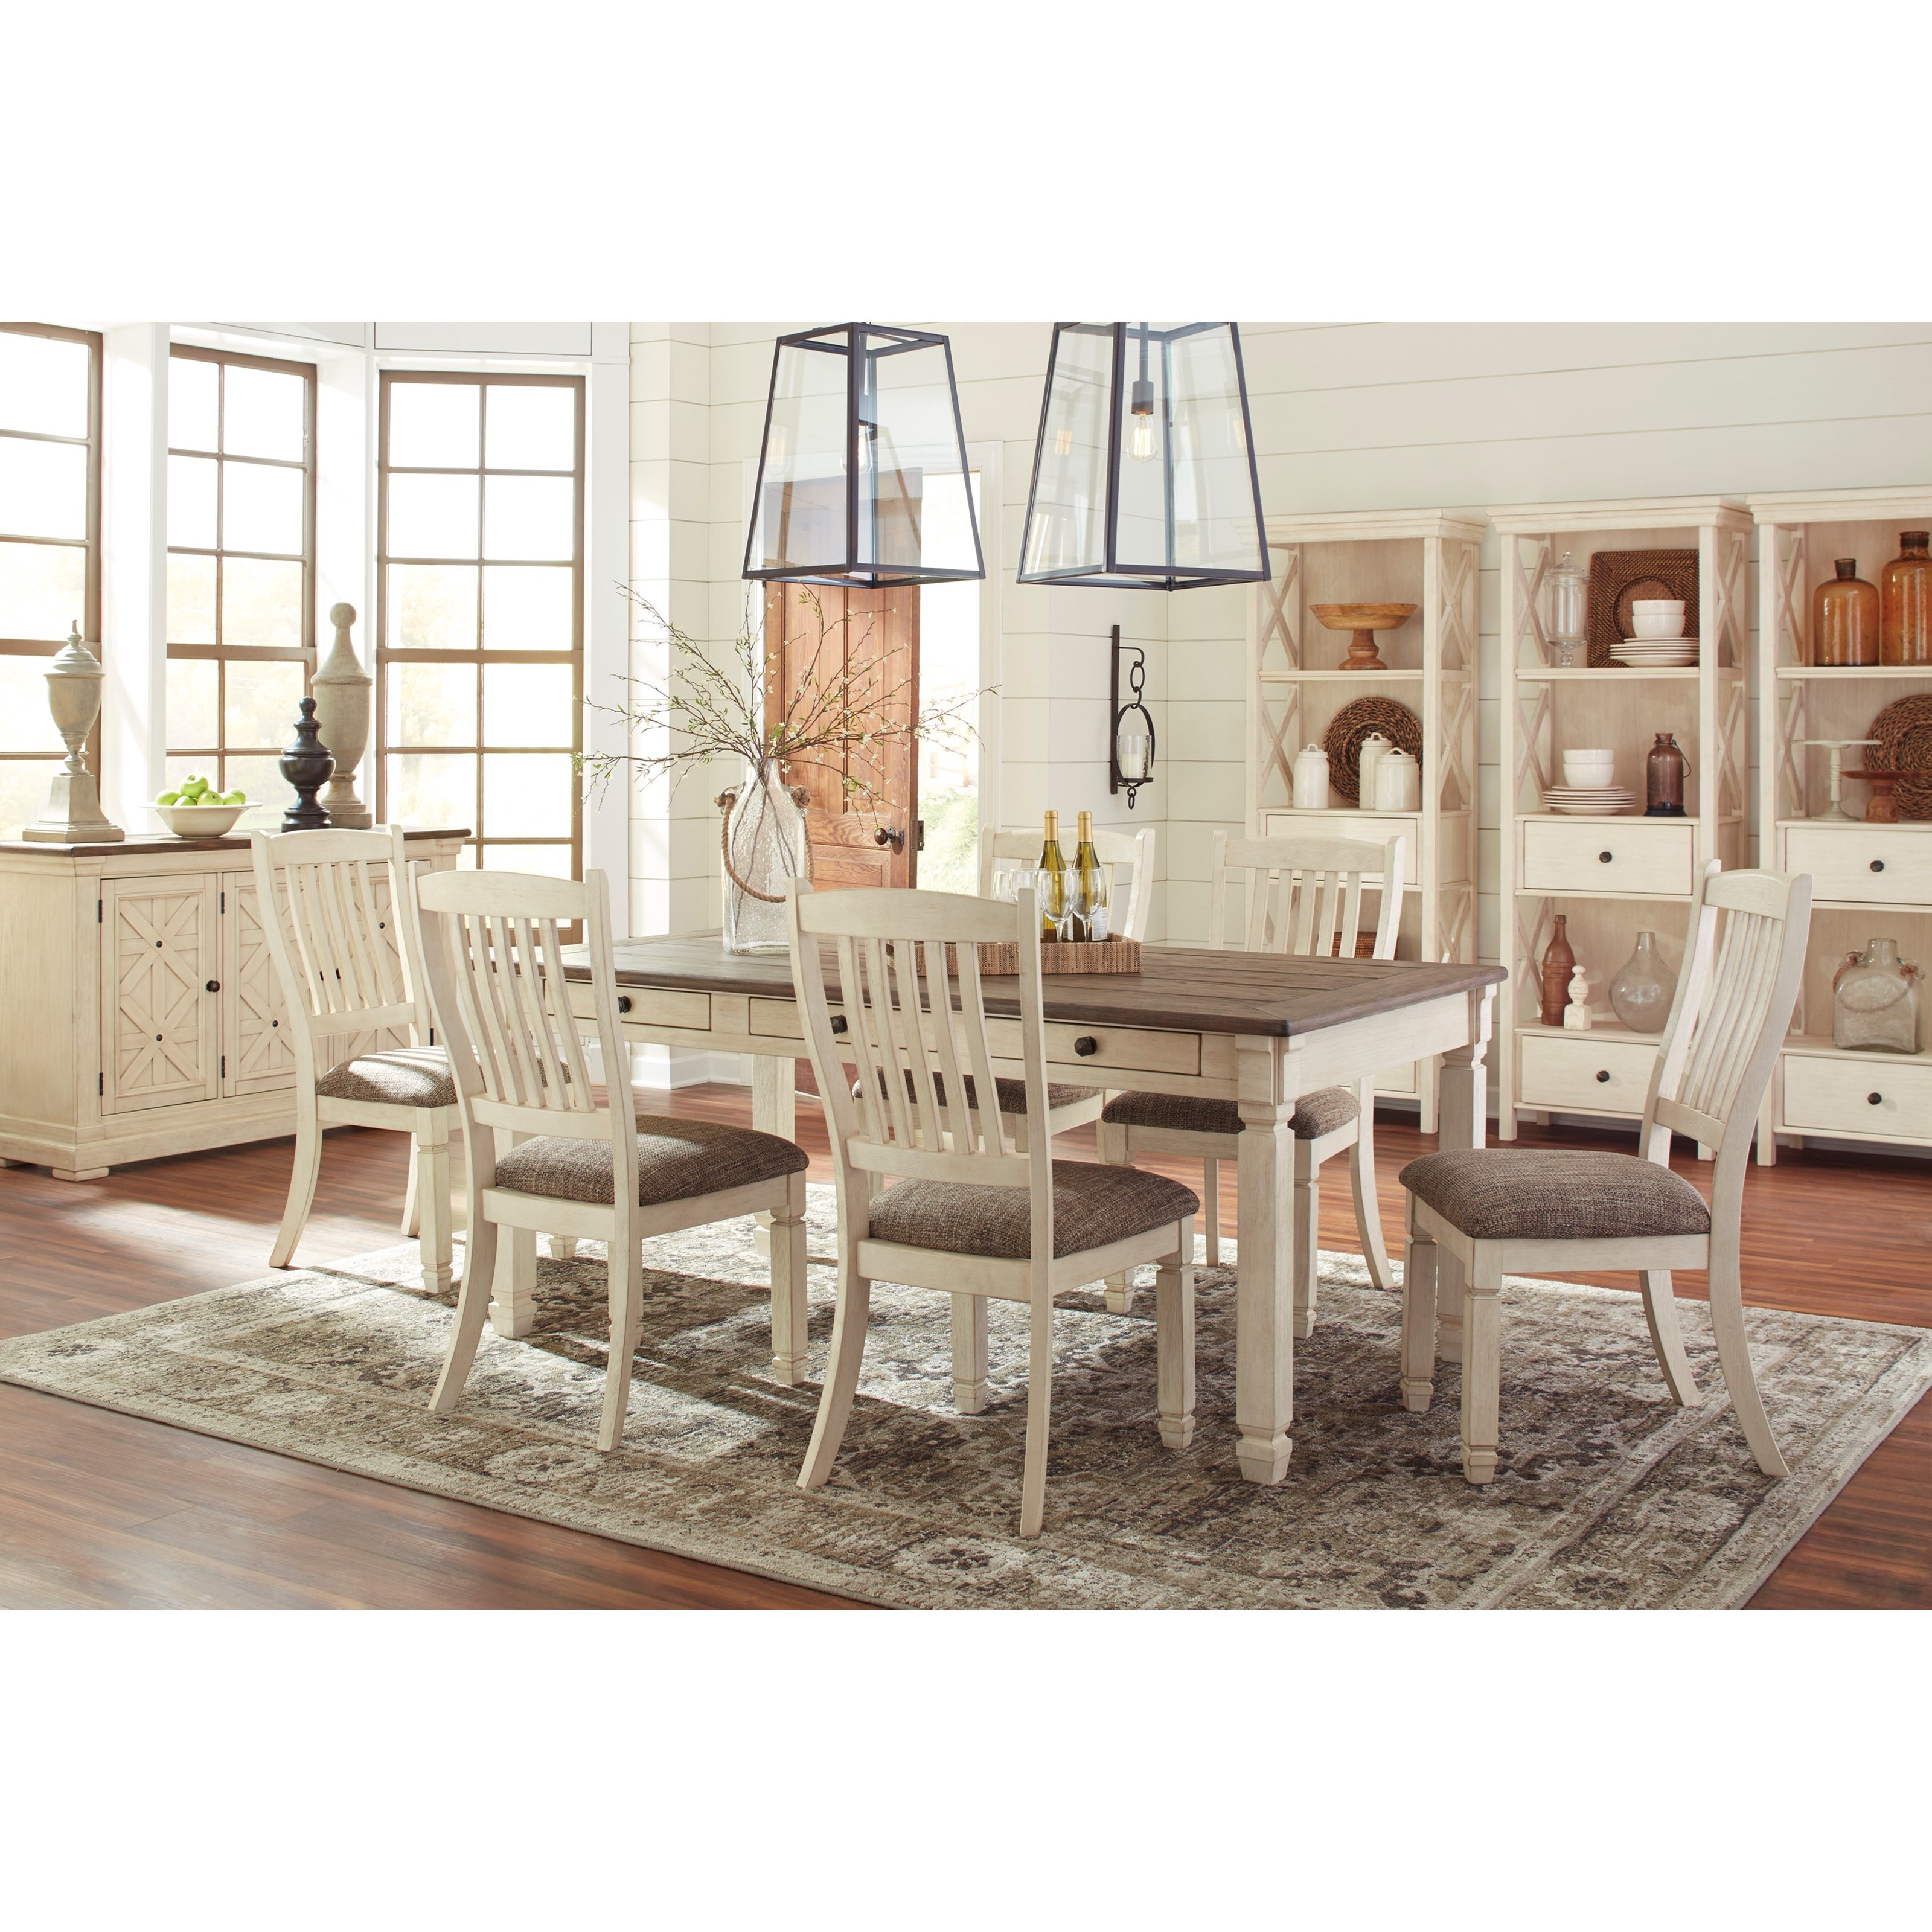 Bolanburg Formal Dining Room Group by Ashley (Signature Design) at Johnny Janosik